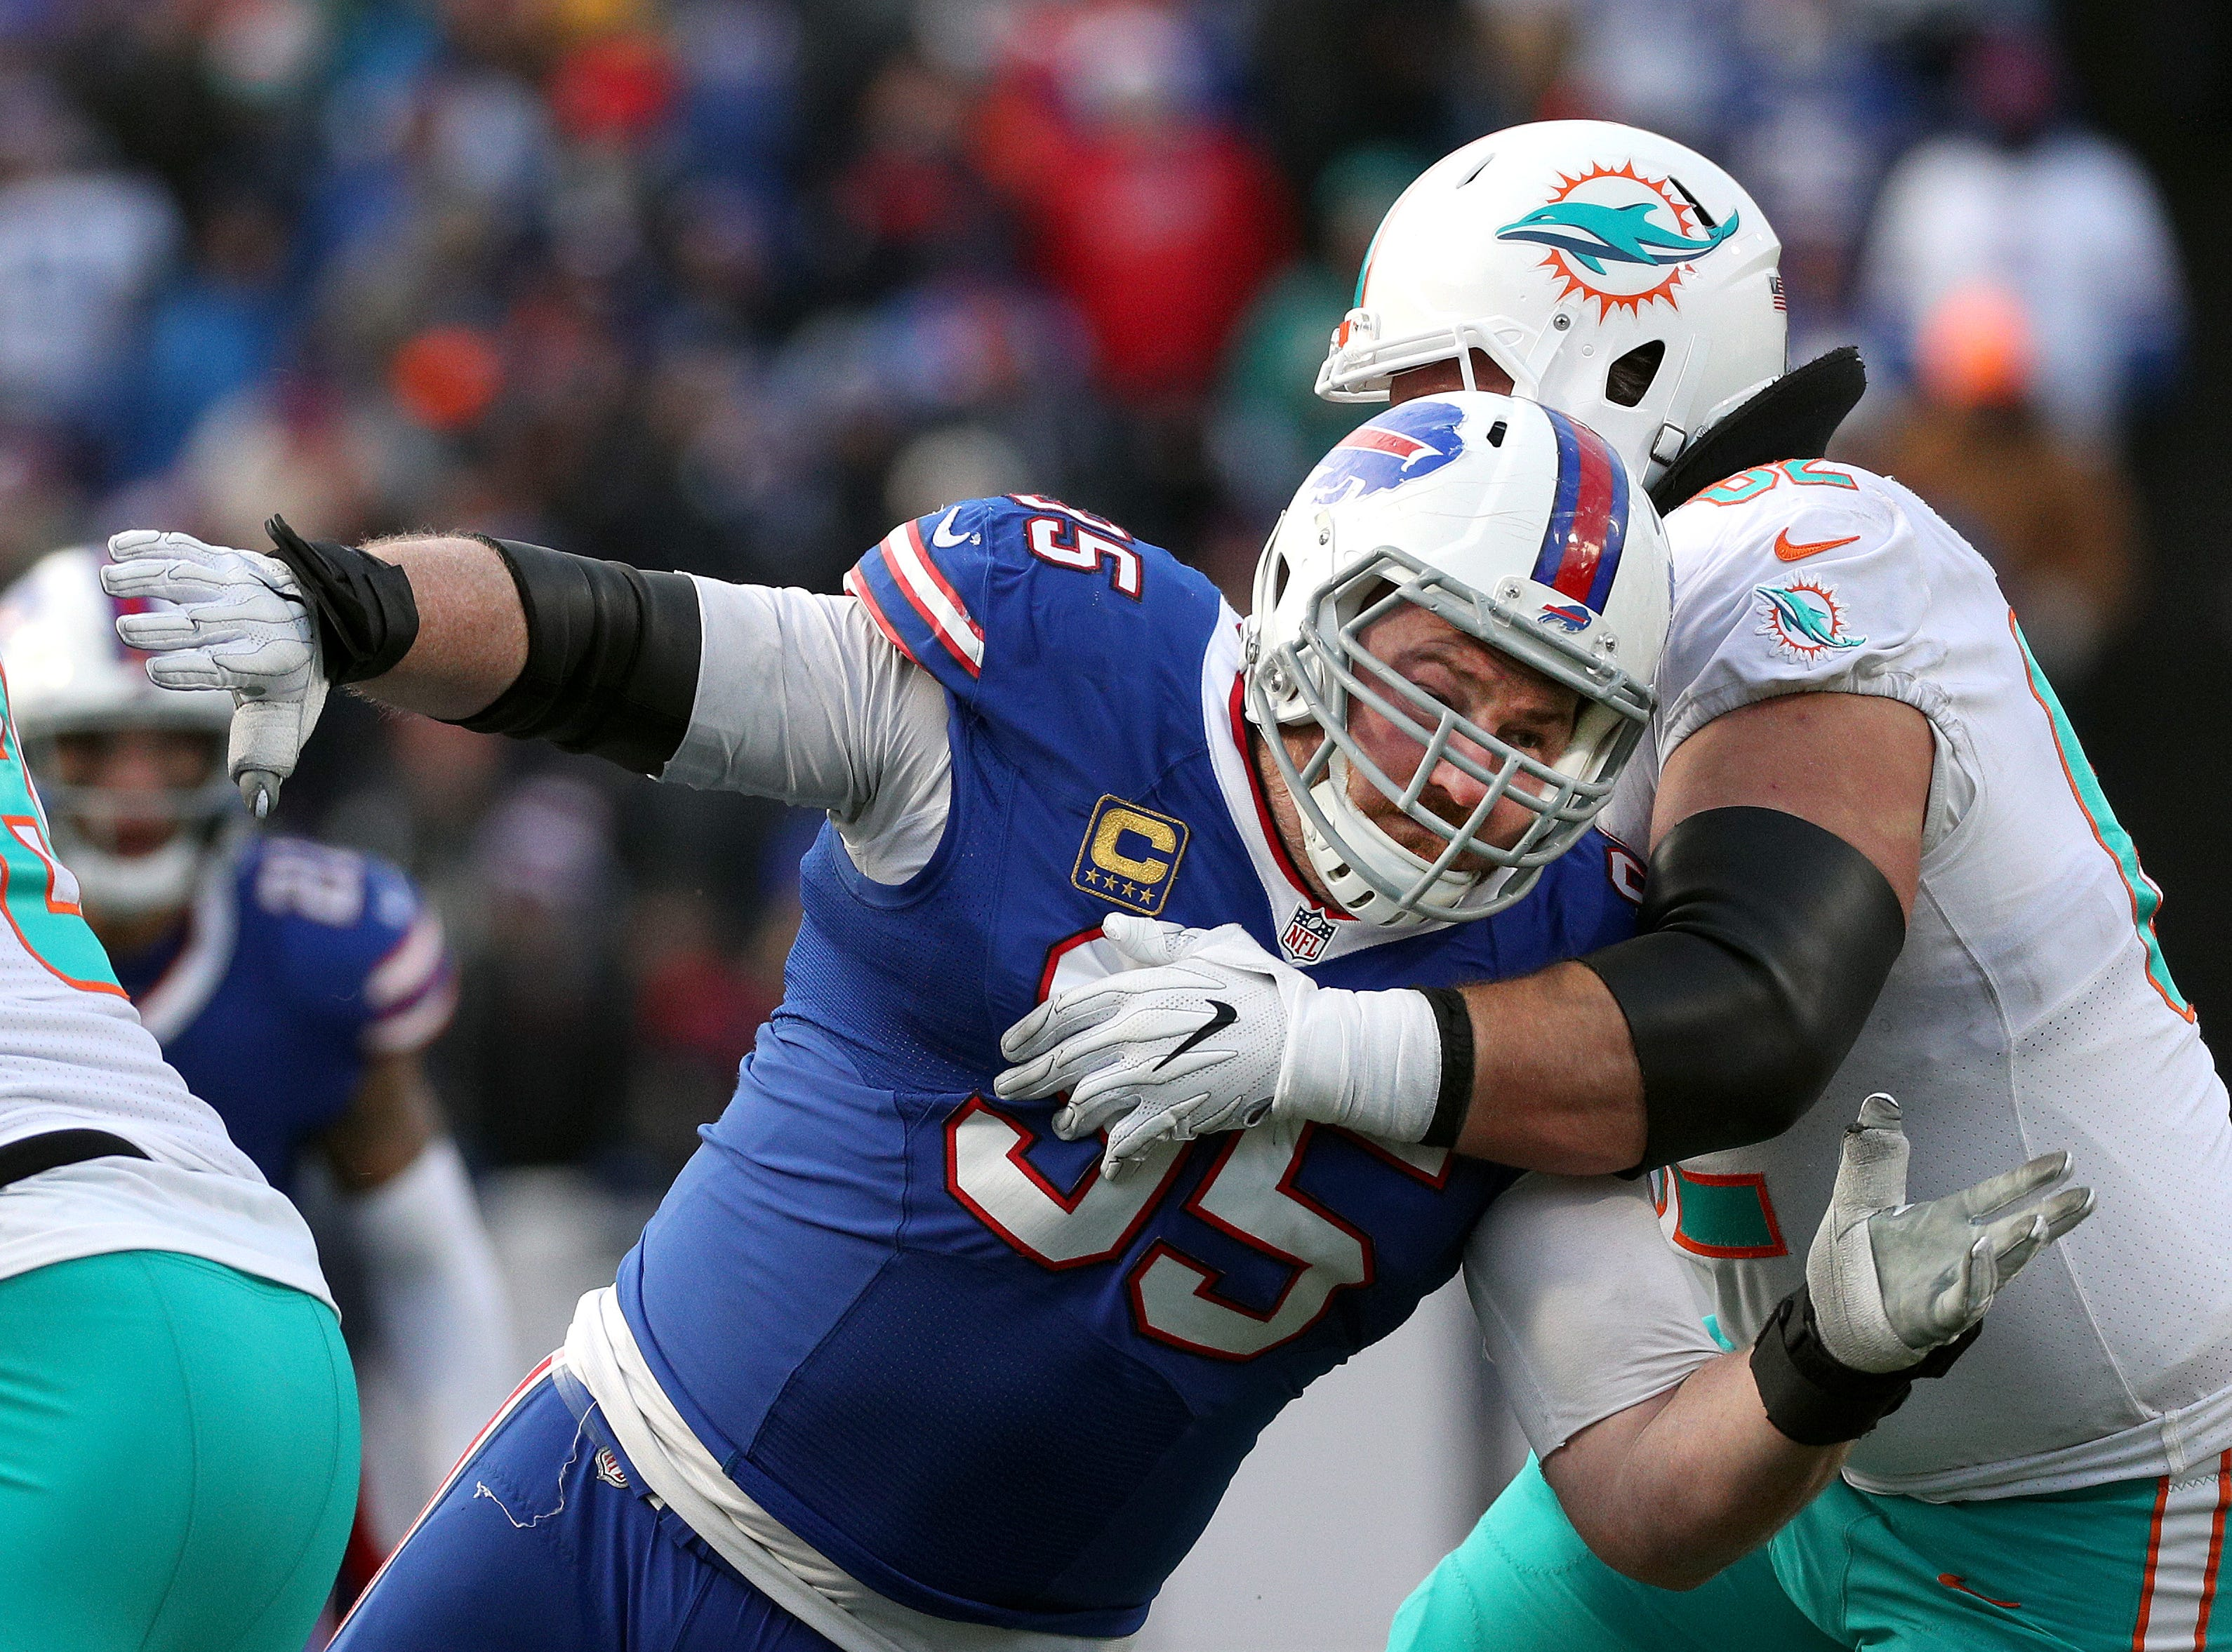 Bills defensive tackle Kyle Williams fight f=though a block.